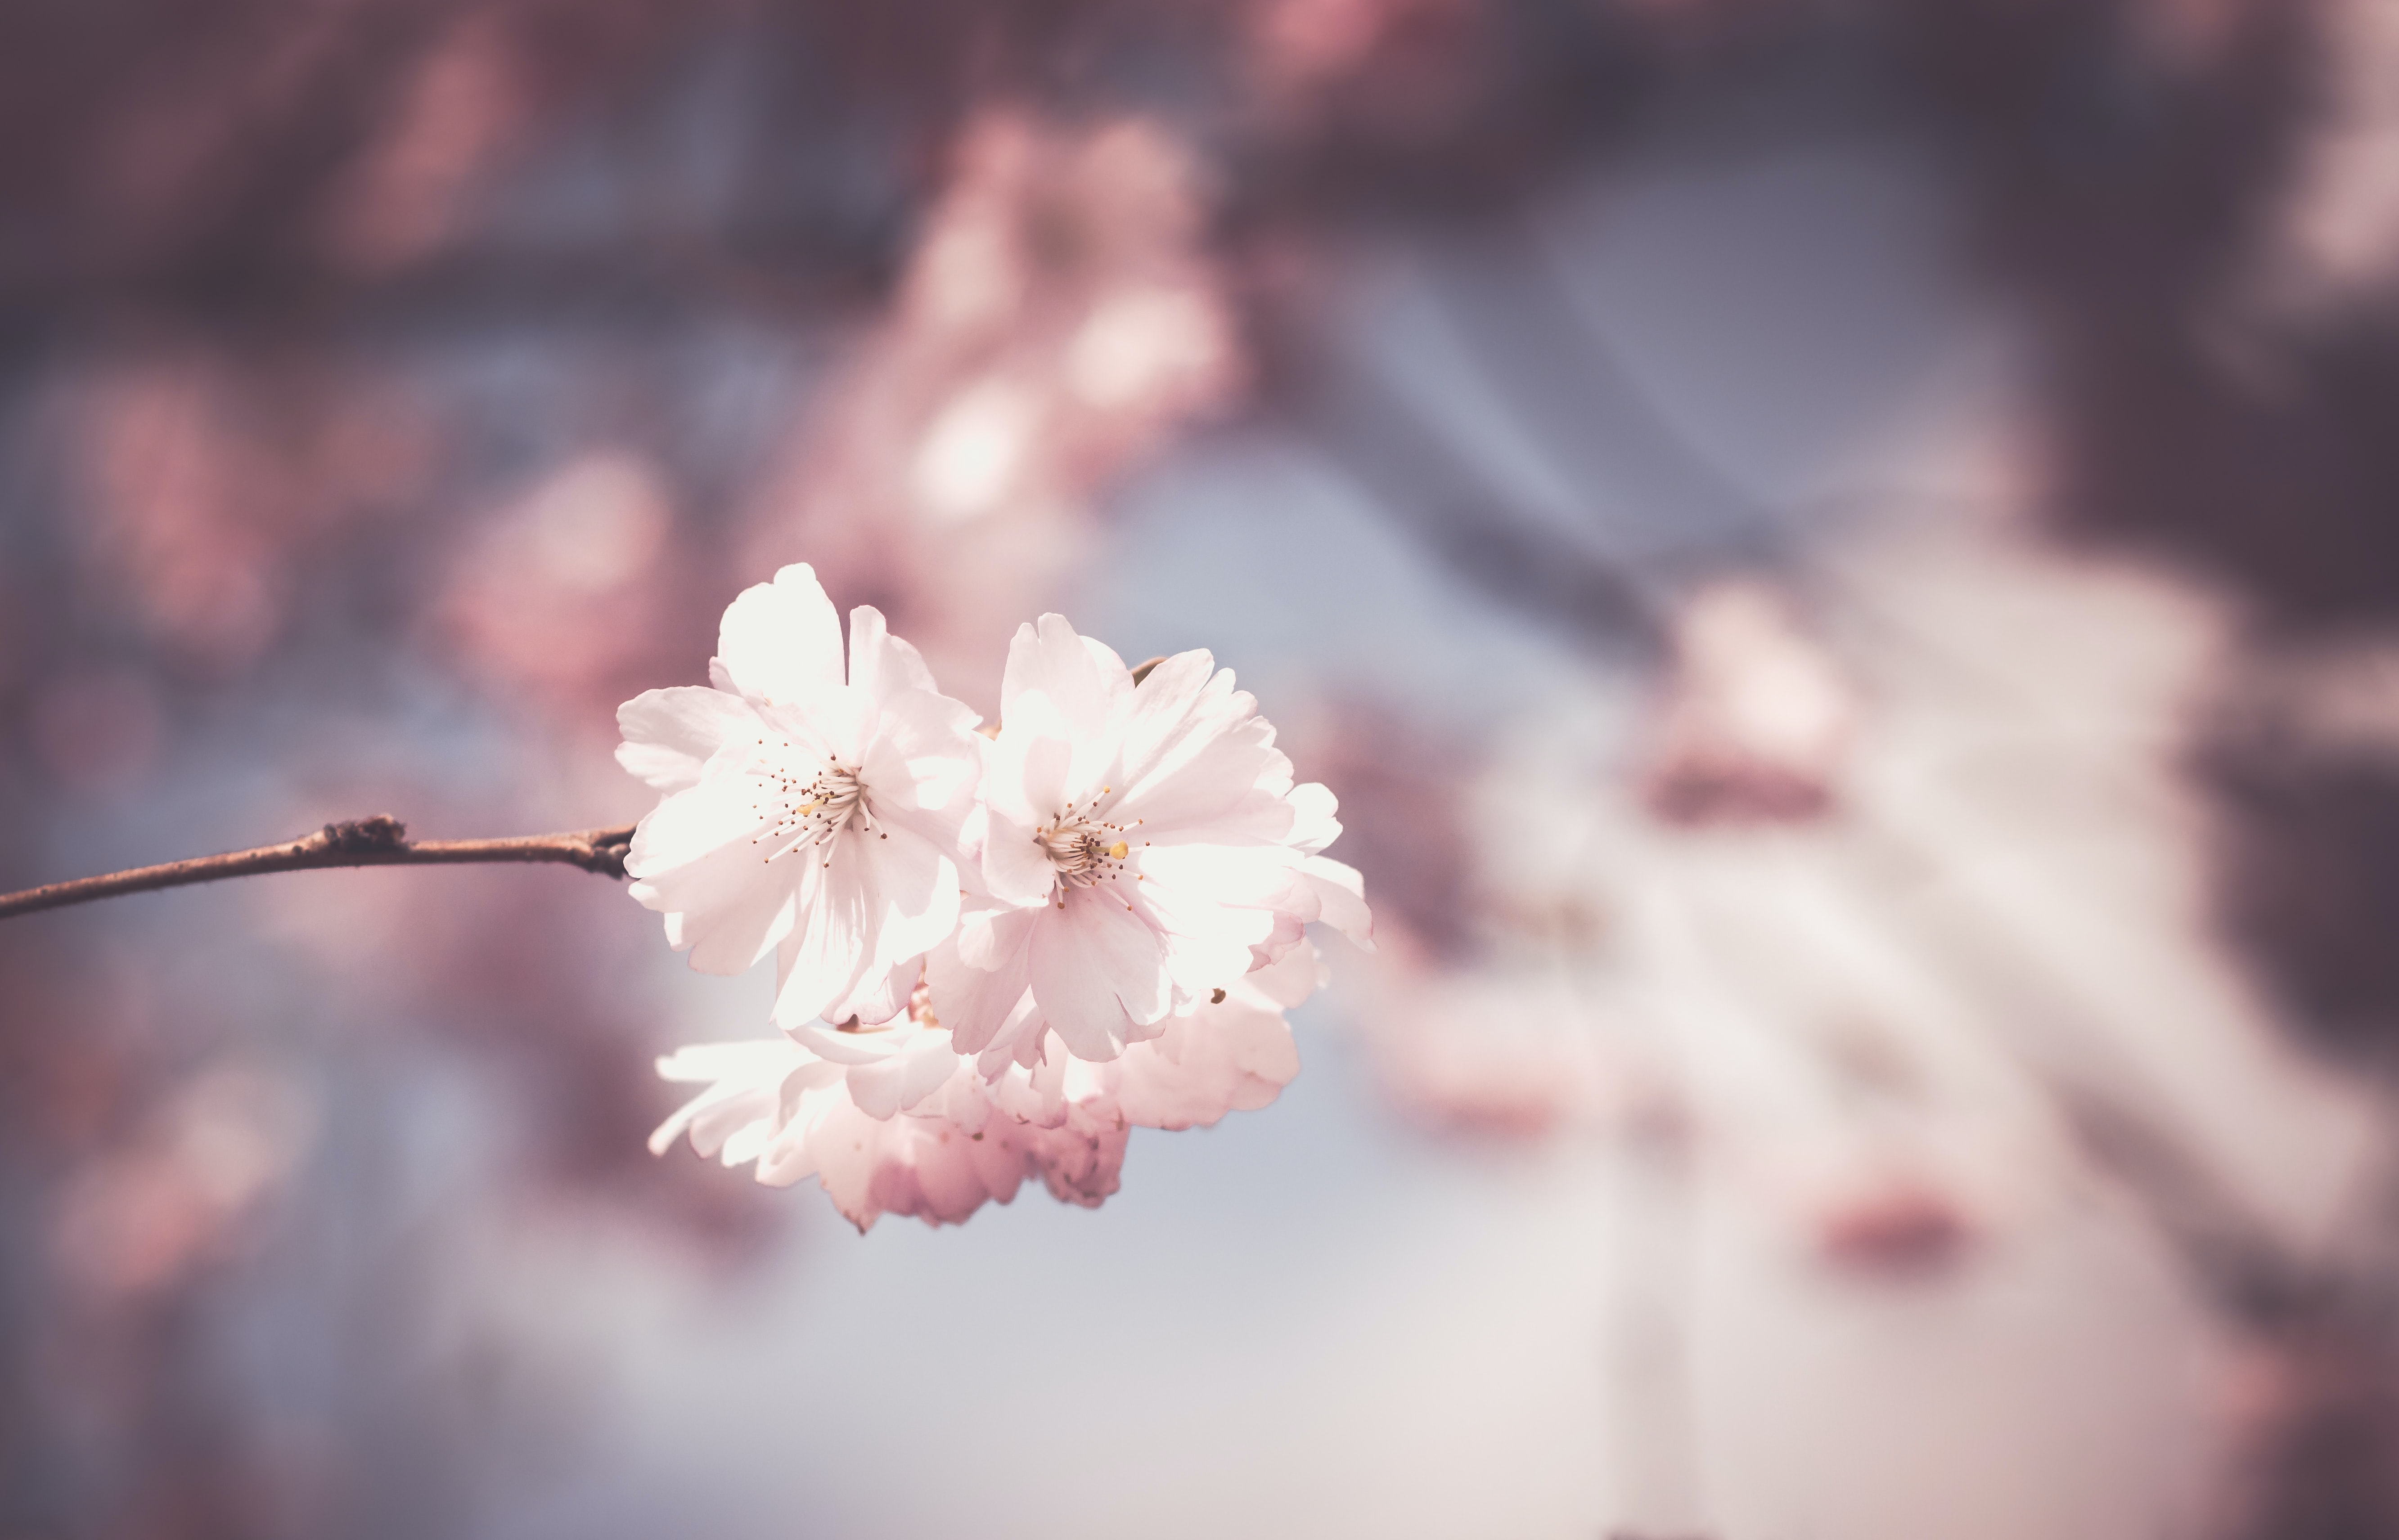 selective focus photography of pink cherry blossom flower